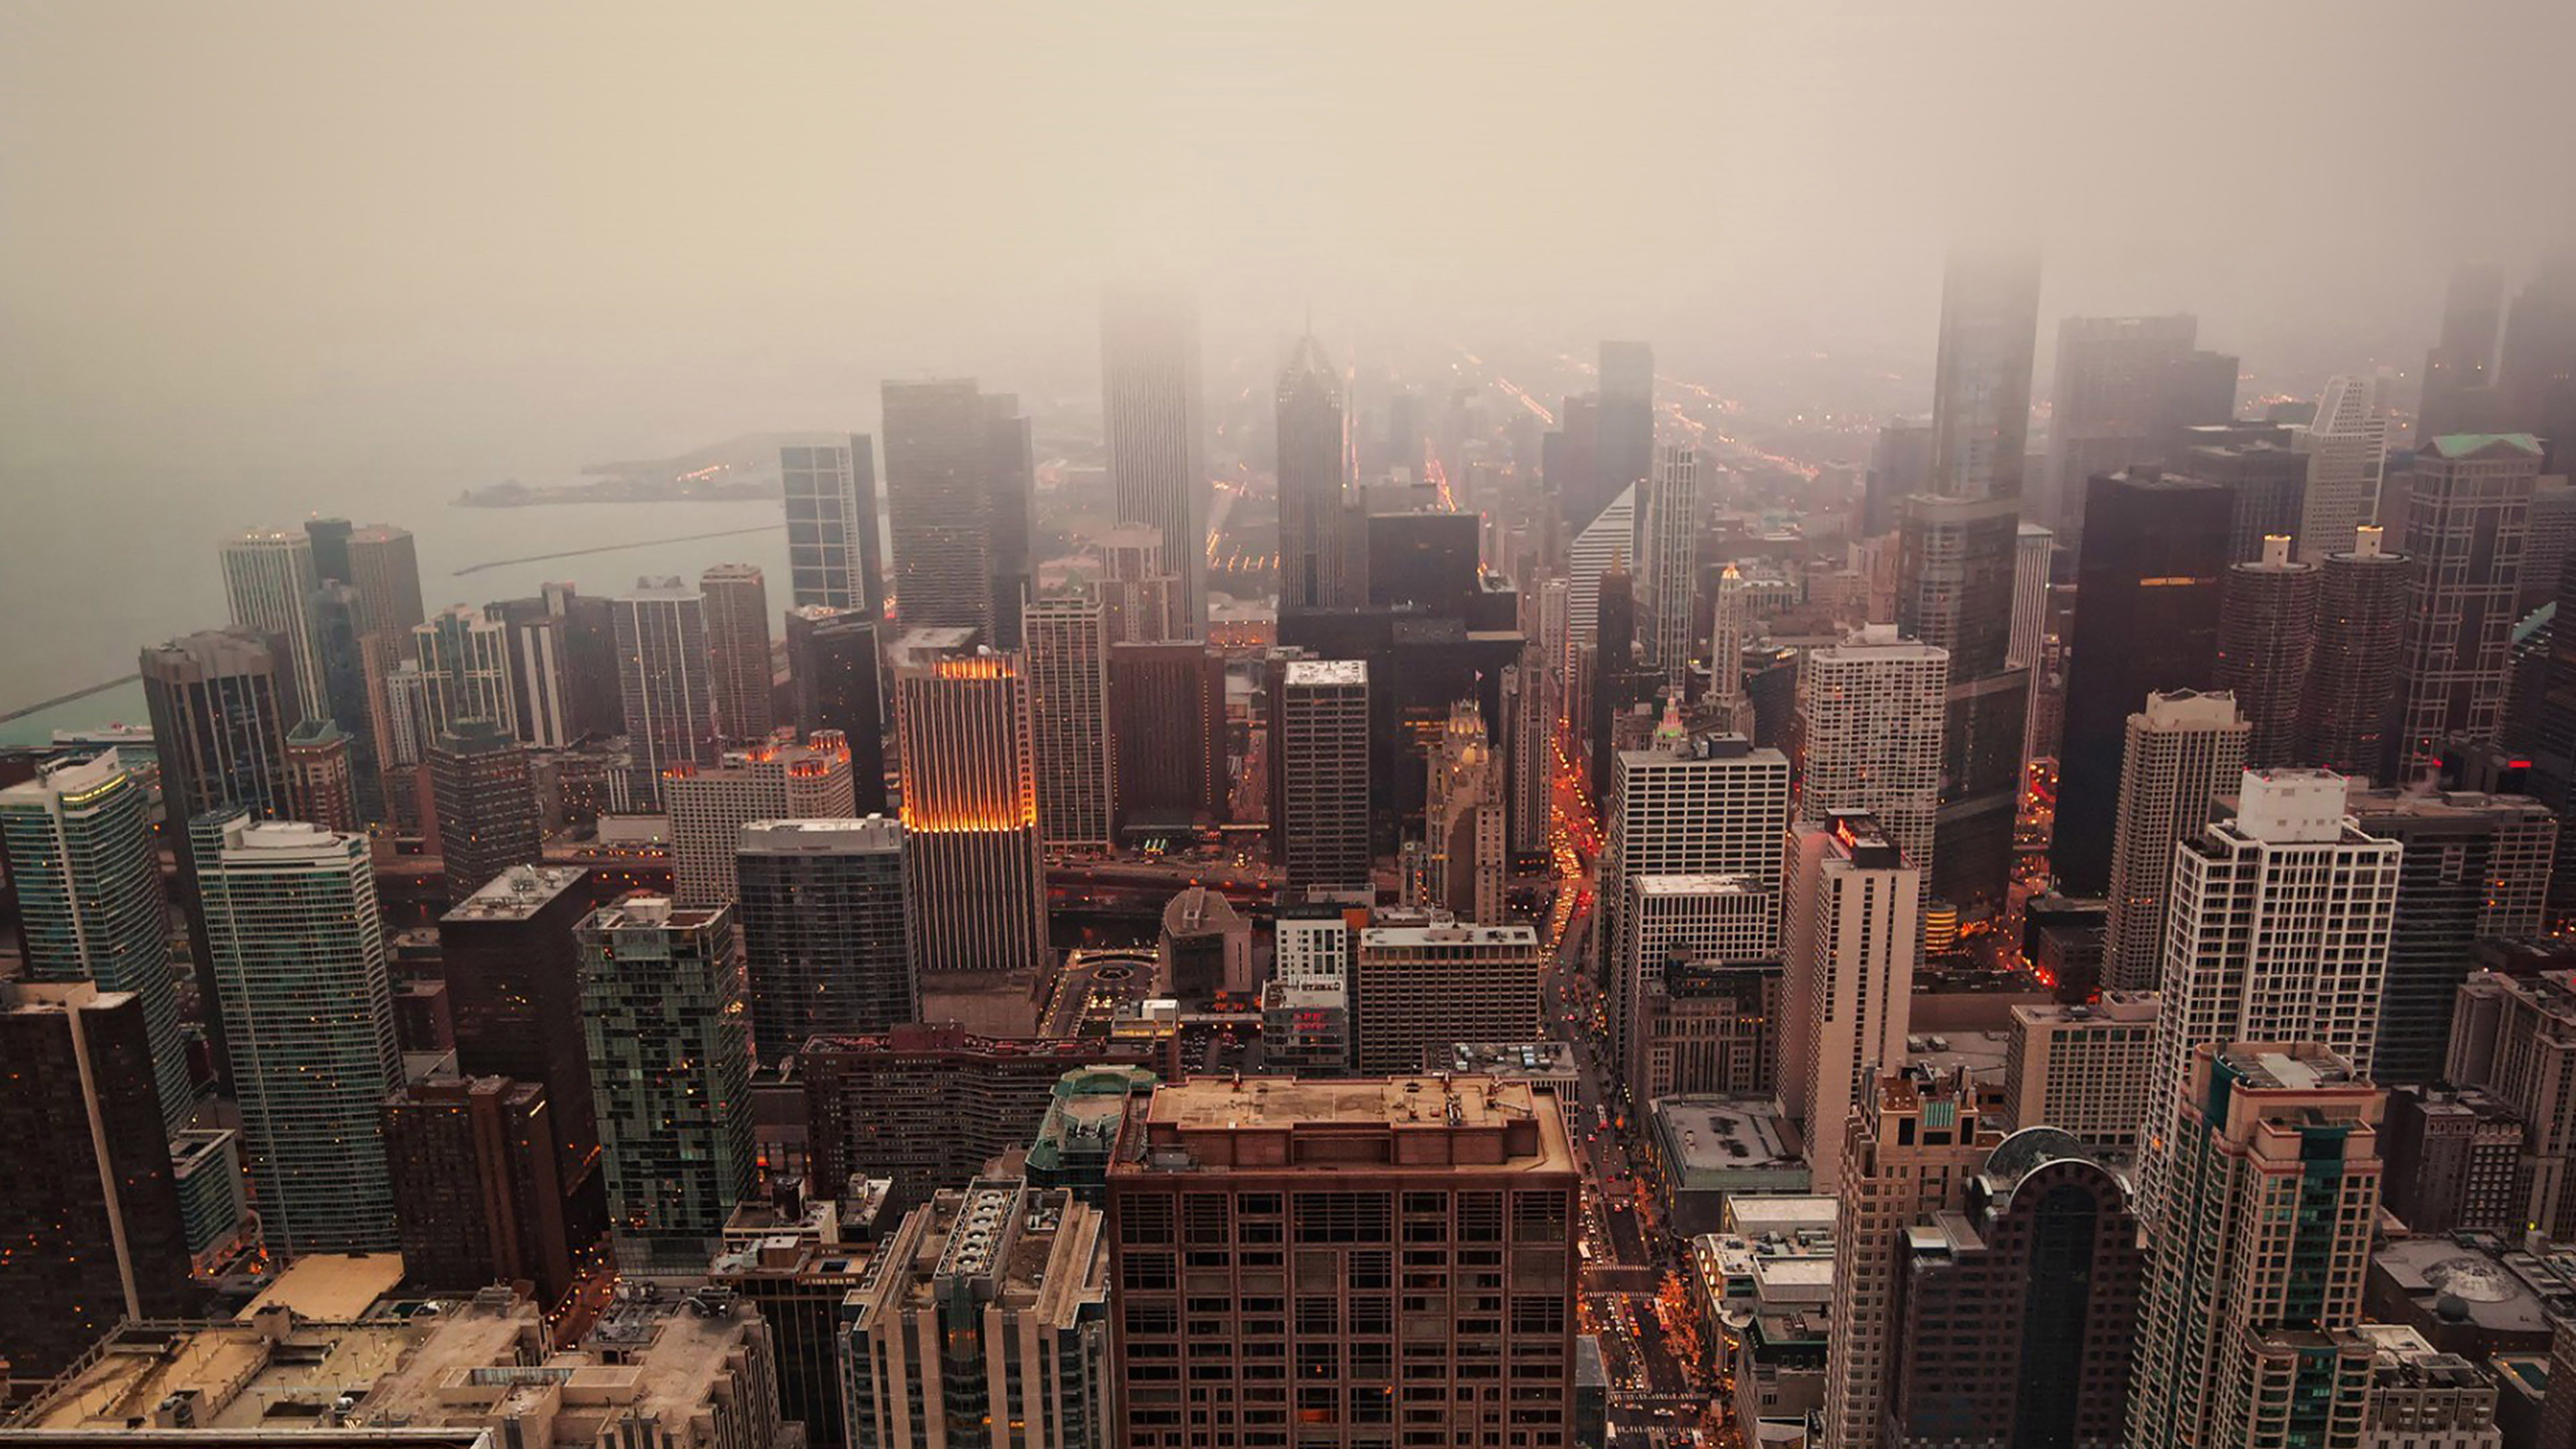 mj15-chicago-skyview-skyline-city-nature - Papers.co